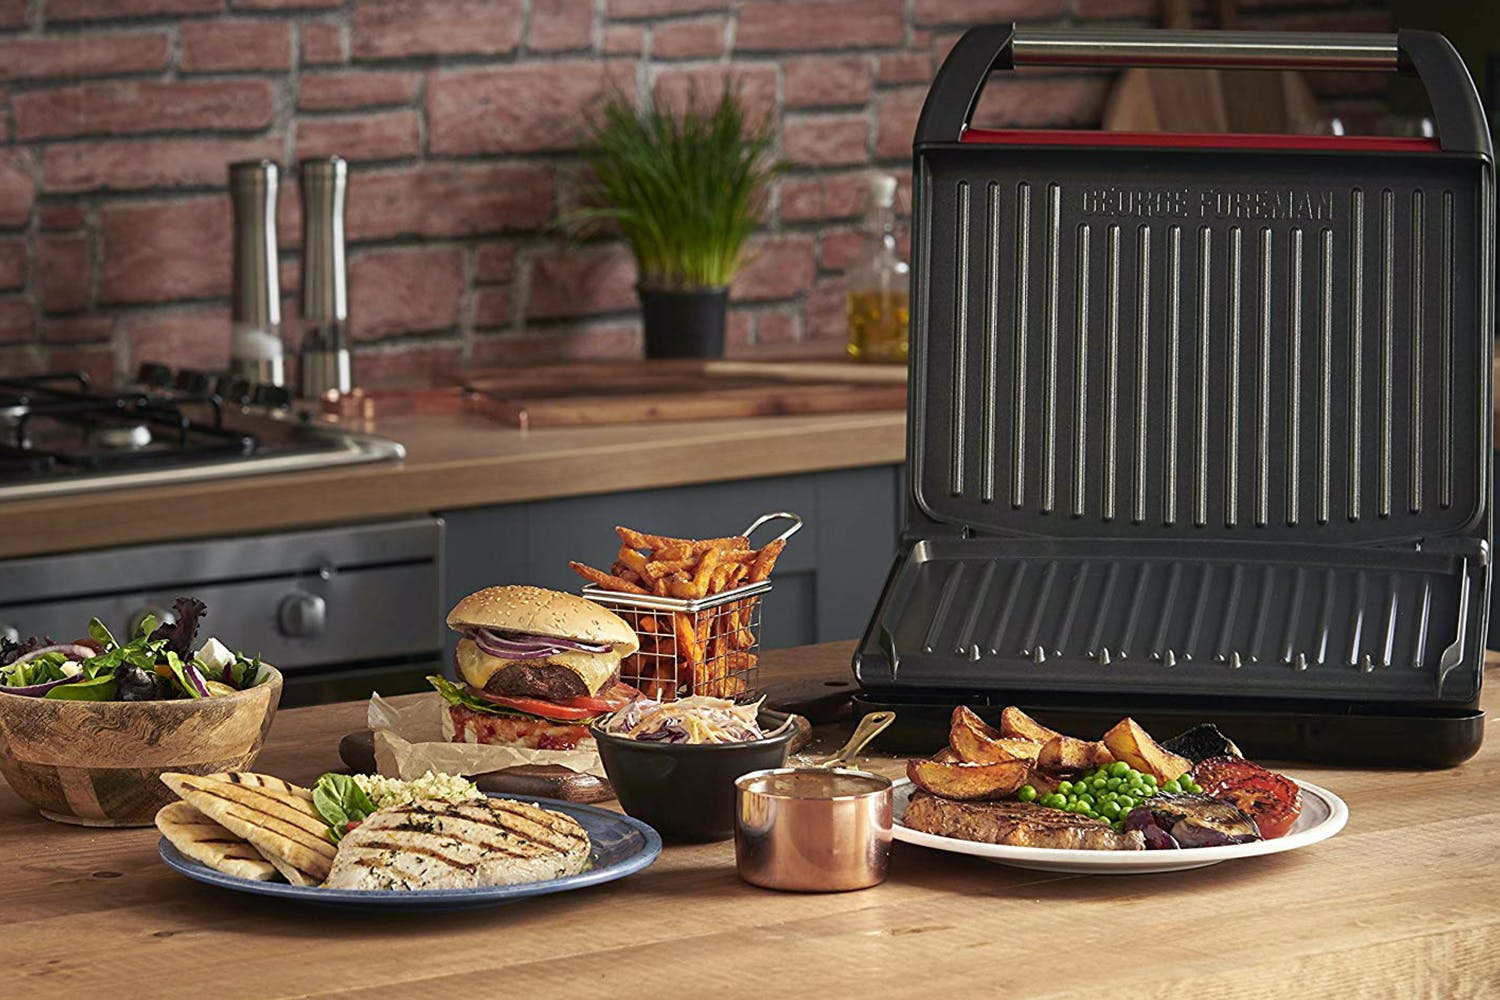 George Foreman Family 7 Portion Entertaining Grill | 25050